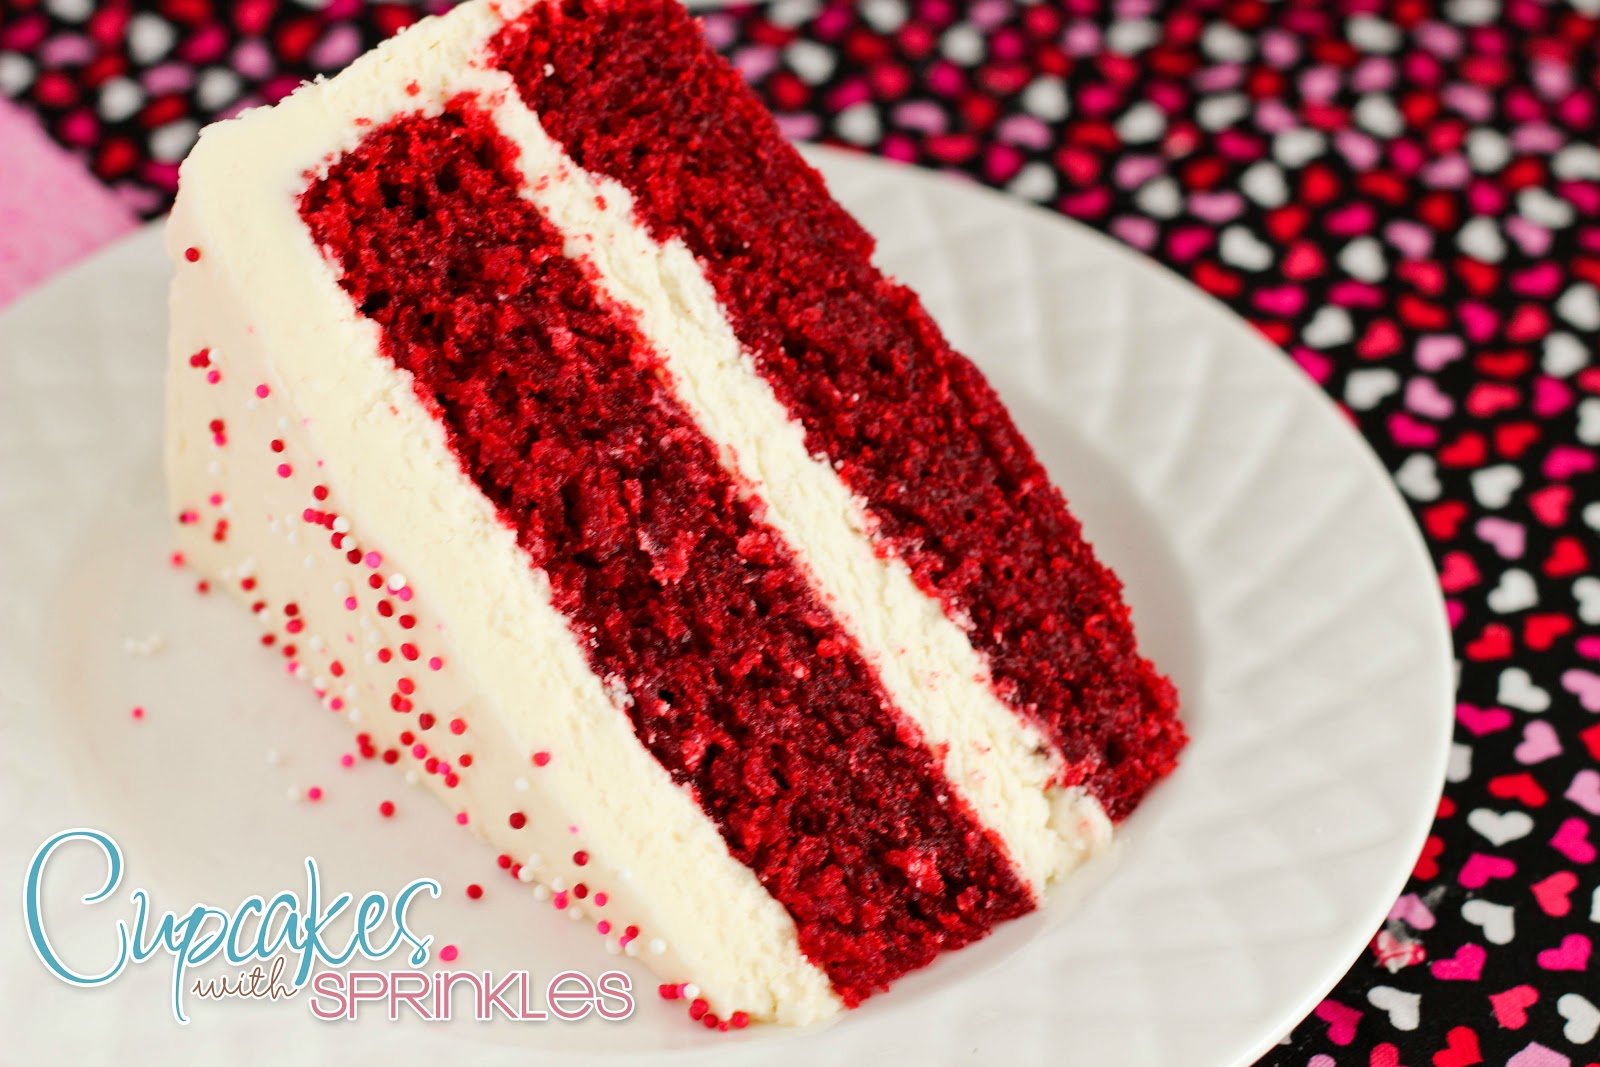 Cupcake with Sprinkles: Red Velvet Cake